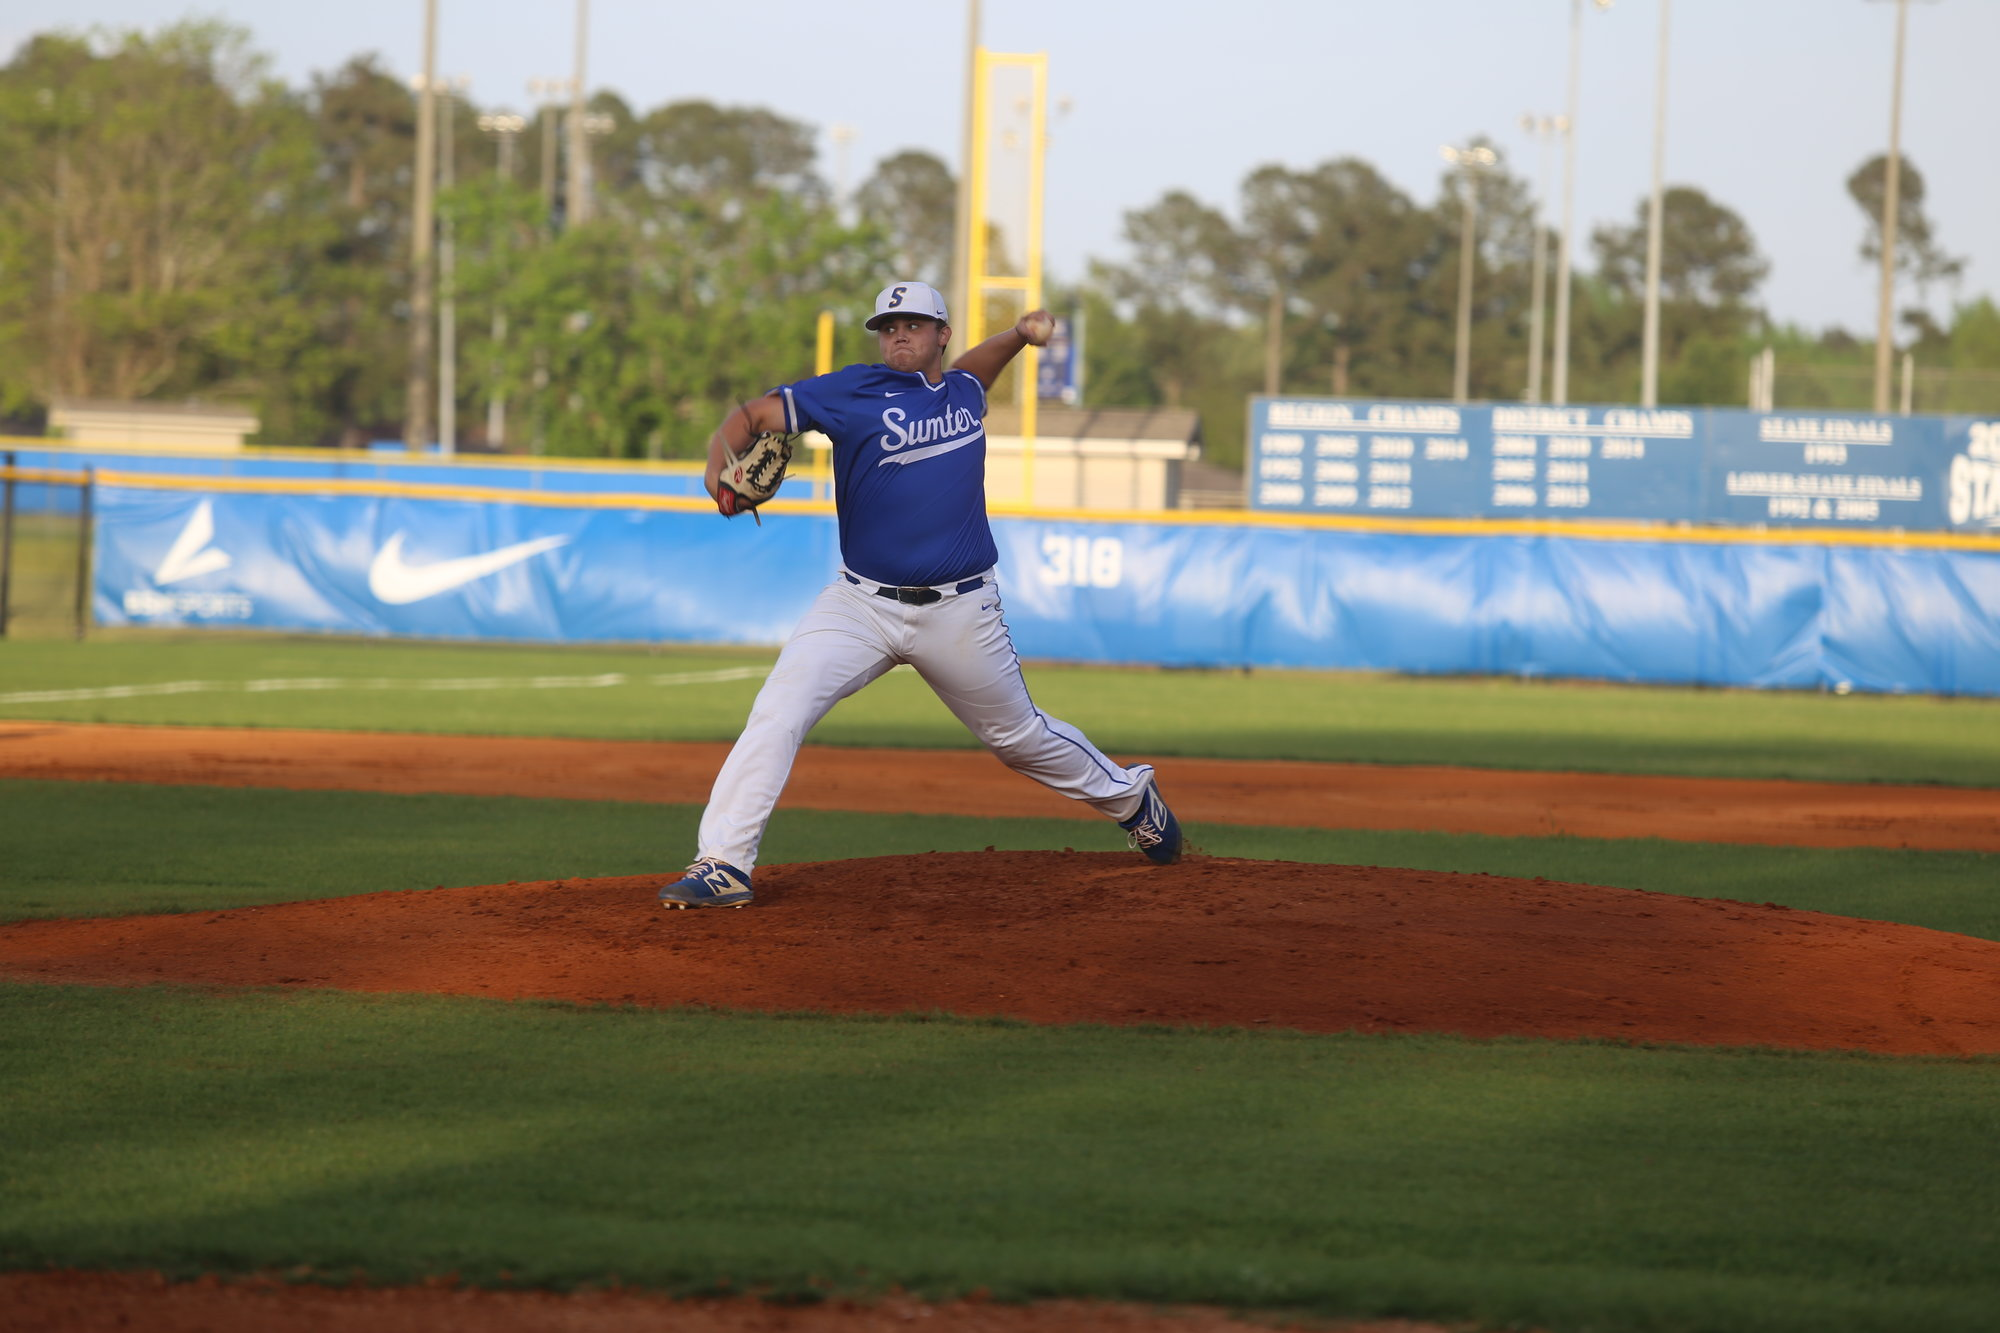 Sumter pitcher Josh Bryant delivers a pitch during the Gamecocks' 3-2 loss to Irmo on Thursday night at home. Bryant finished with nine strikeouts, issued one walk and gave up four hits and three runs, all of them earned, in 4 2/3 innings.